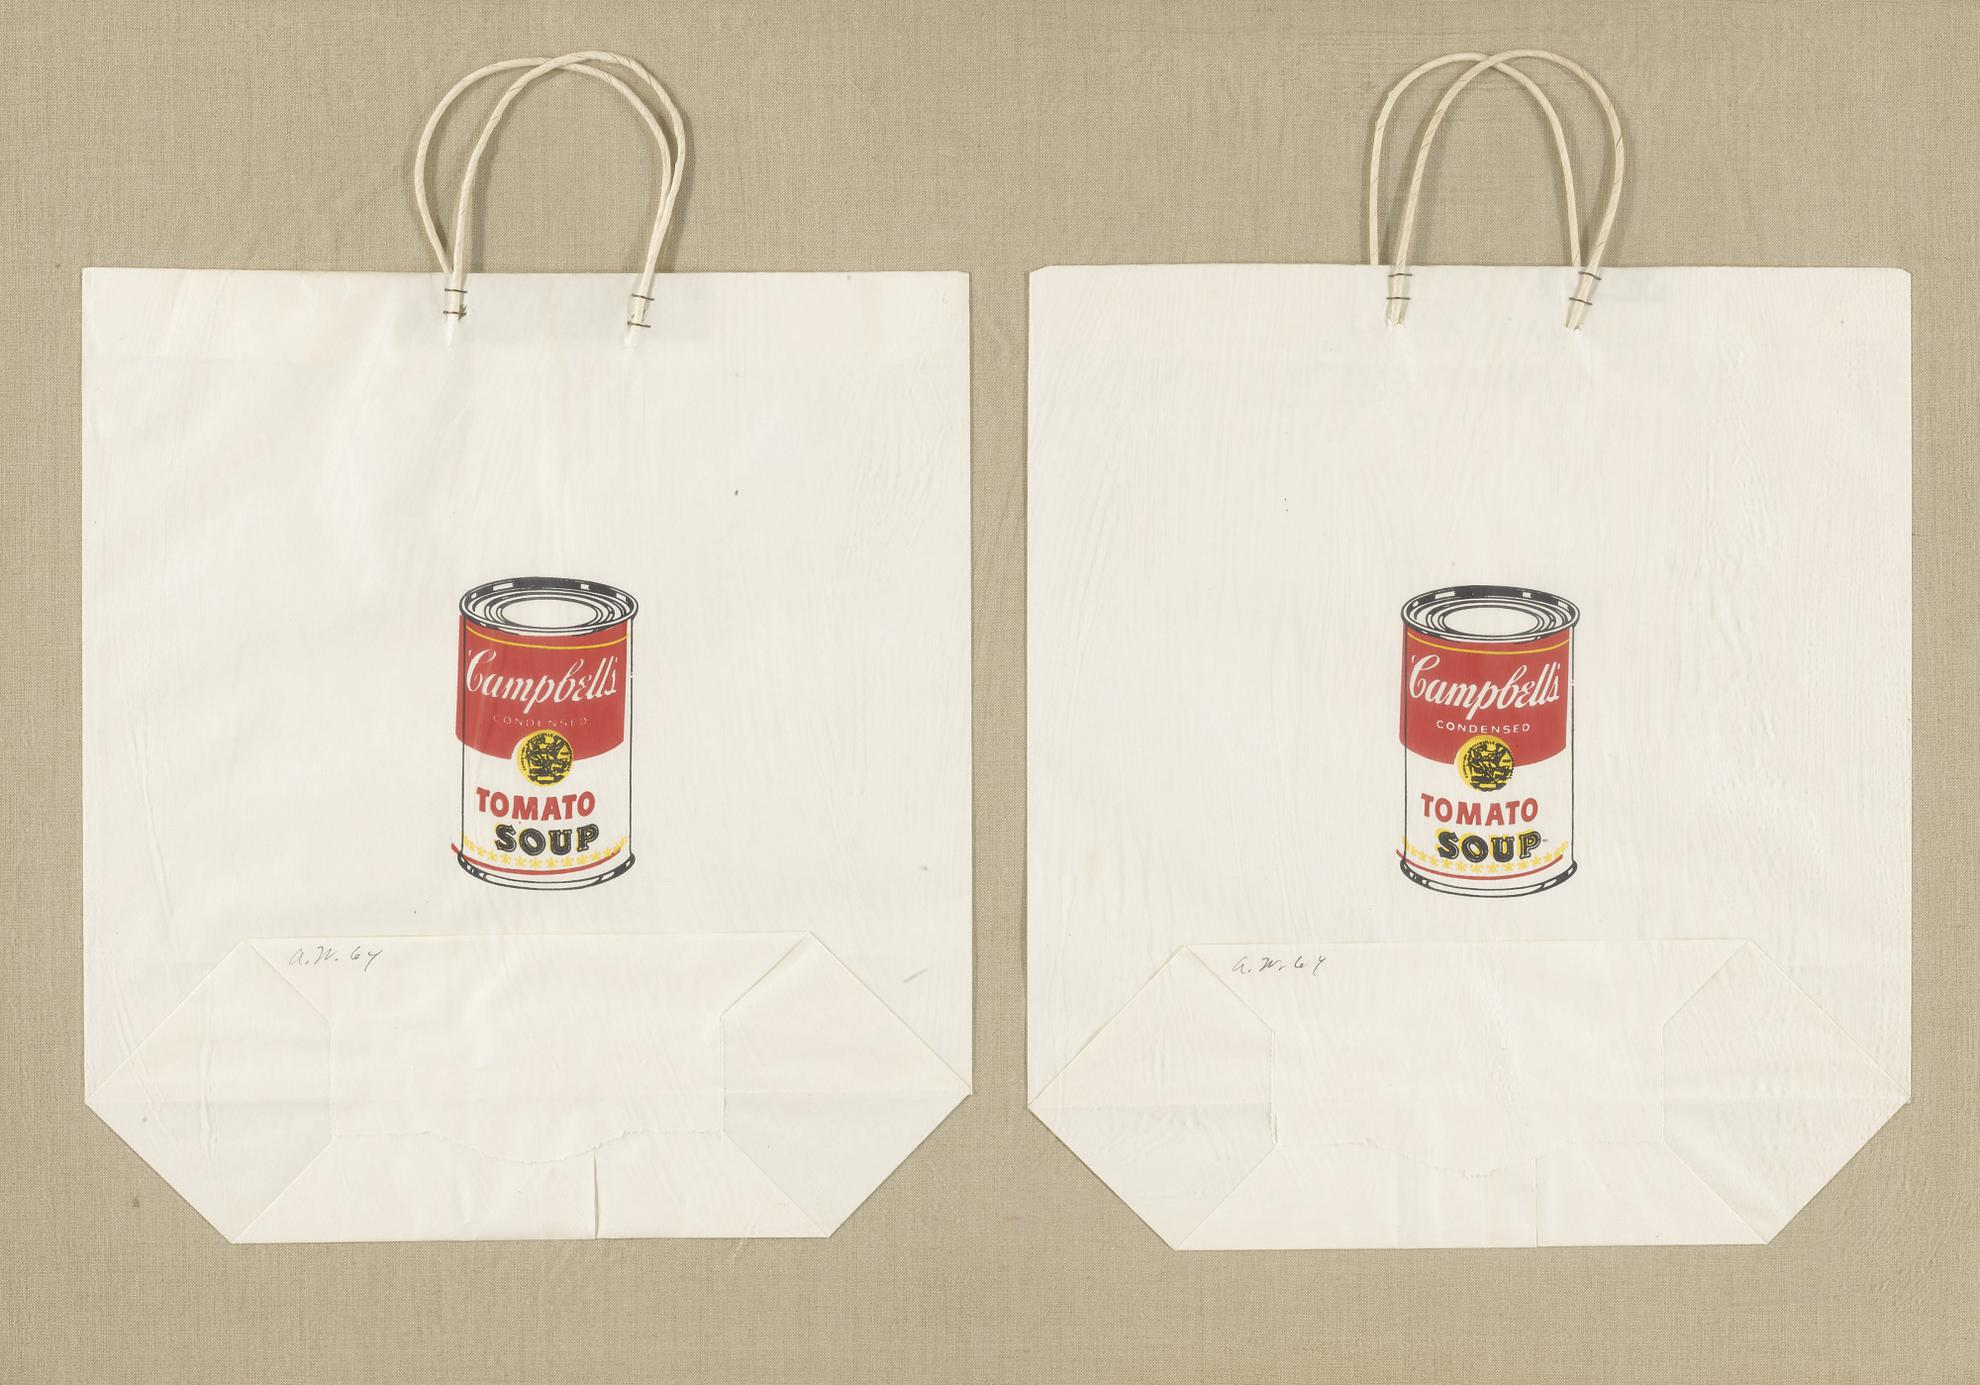 Andy Warhol-Campbells Soup Can (Tomato) (F. & S. II.4)-1964